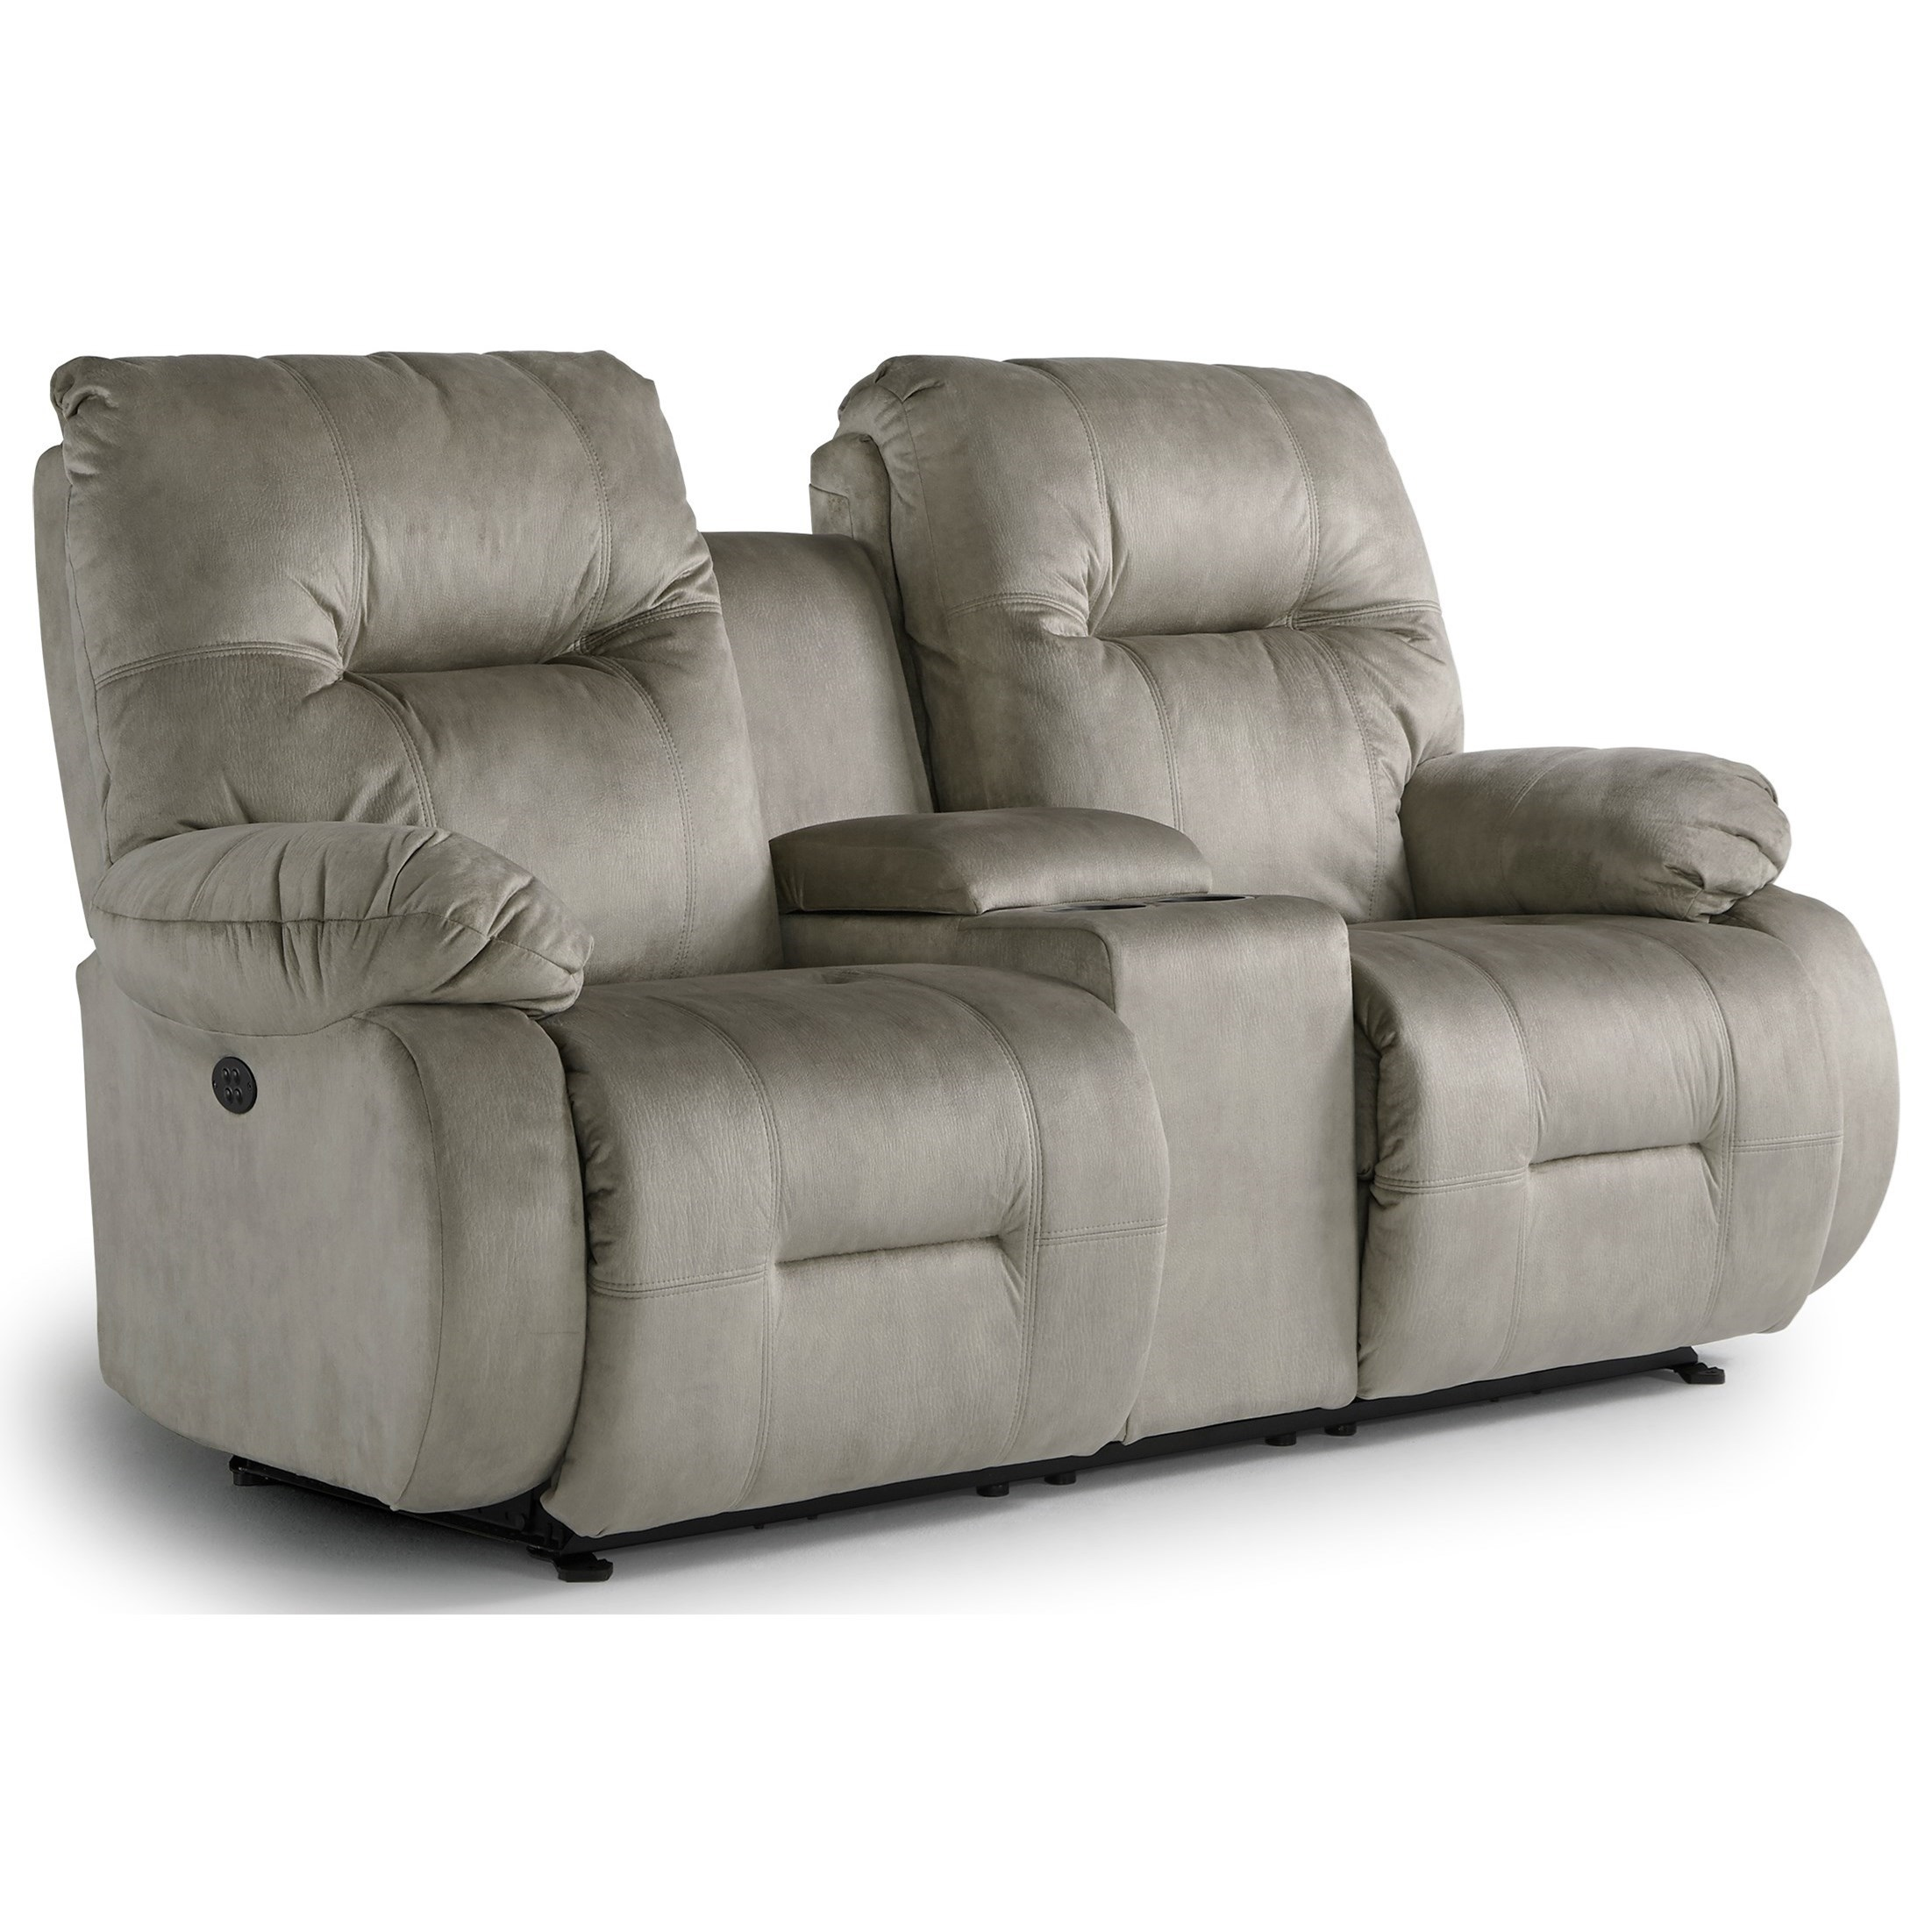 Best Home Furnishings Brinley 2 L700rq7 Power Rocking Reclining Console Loveseat Hudson 39 S